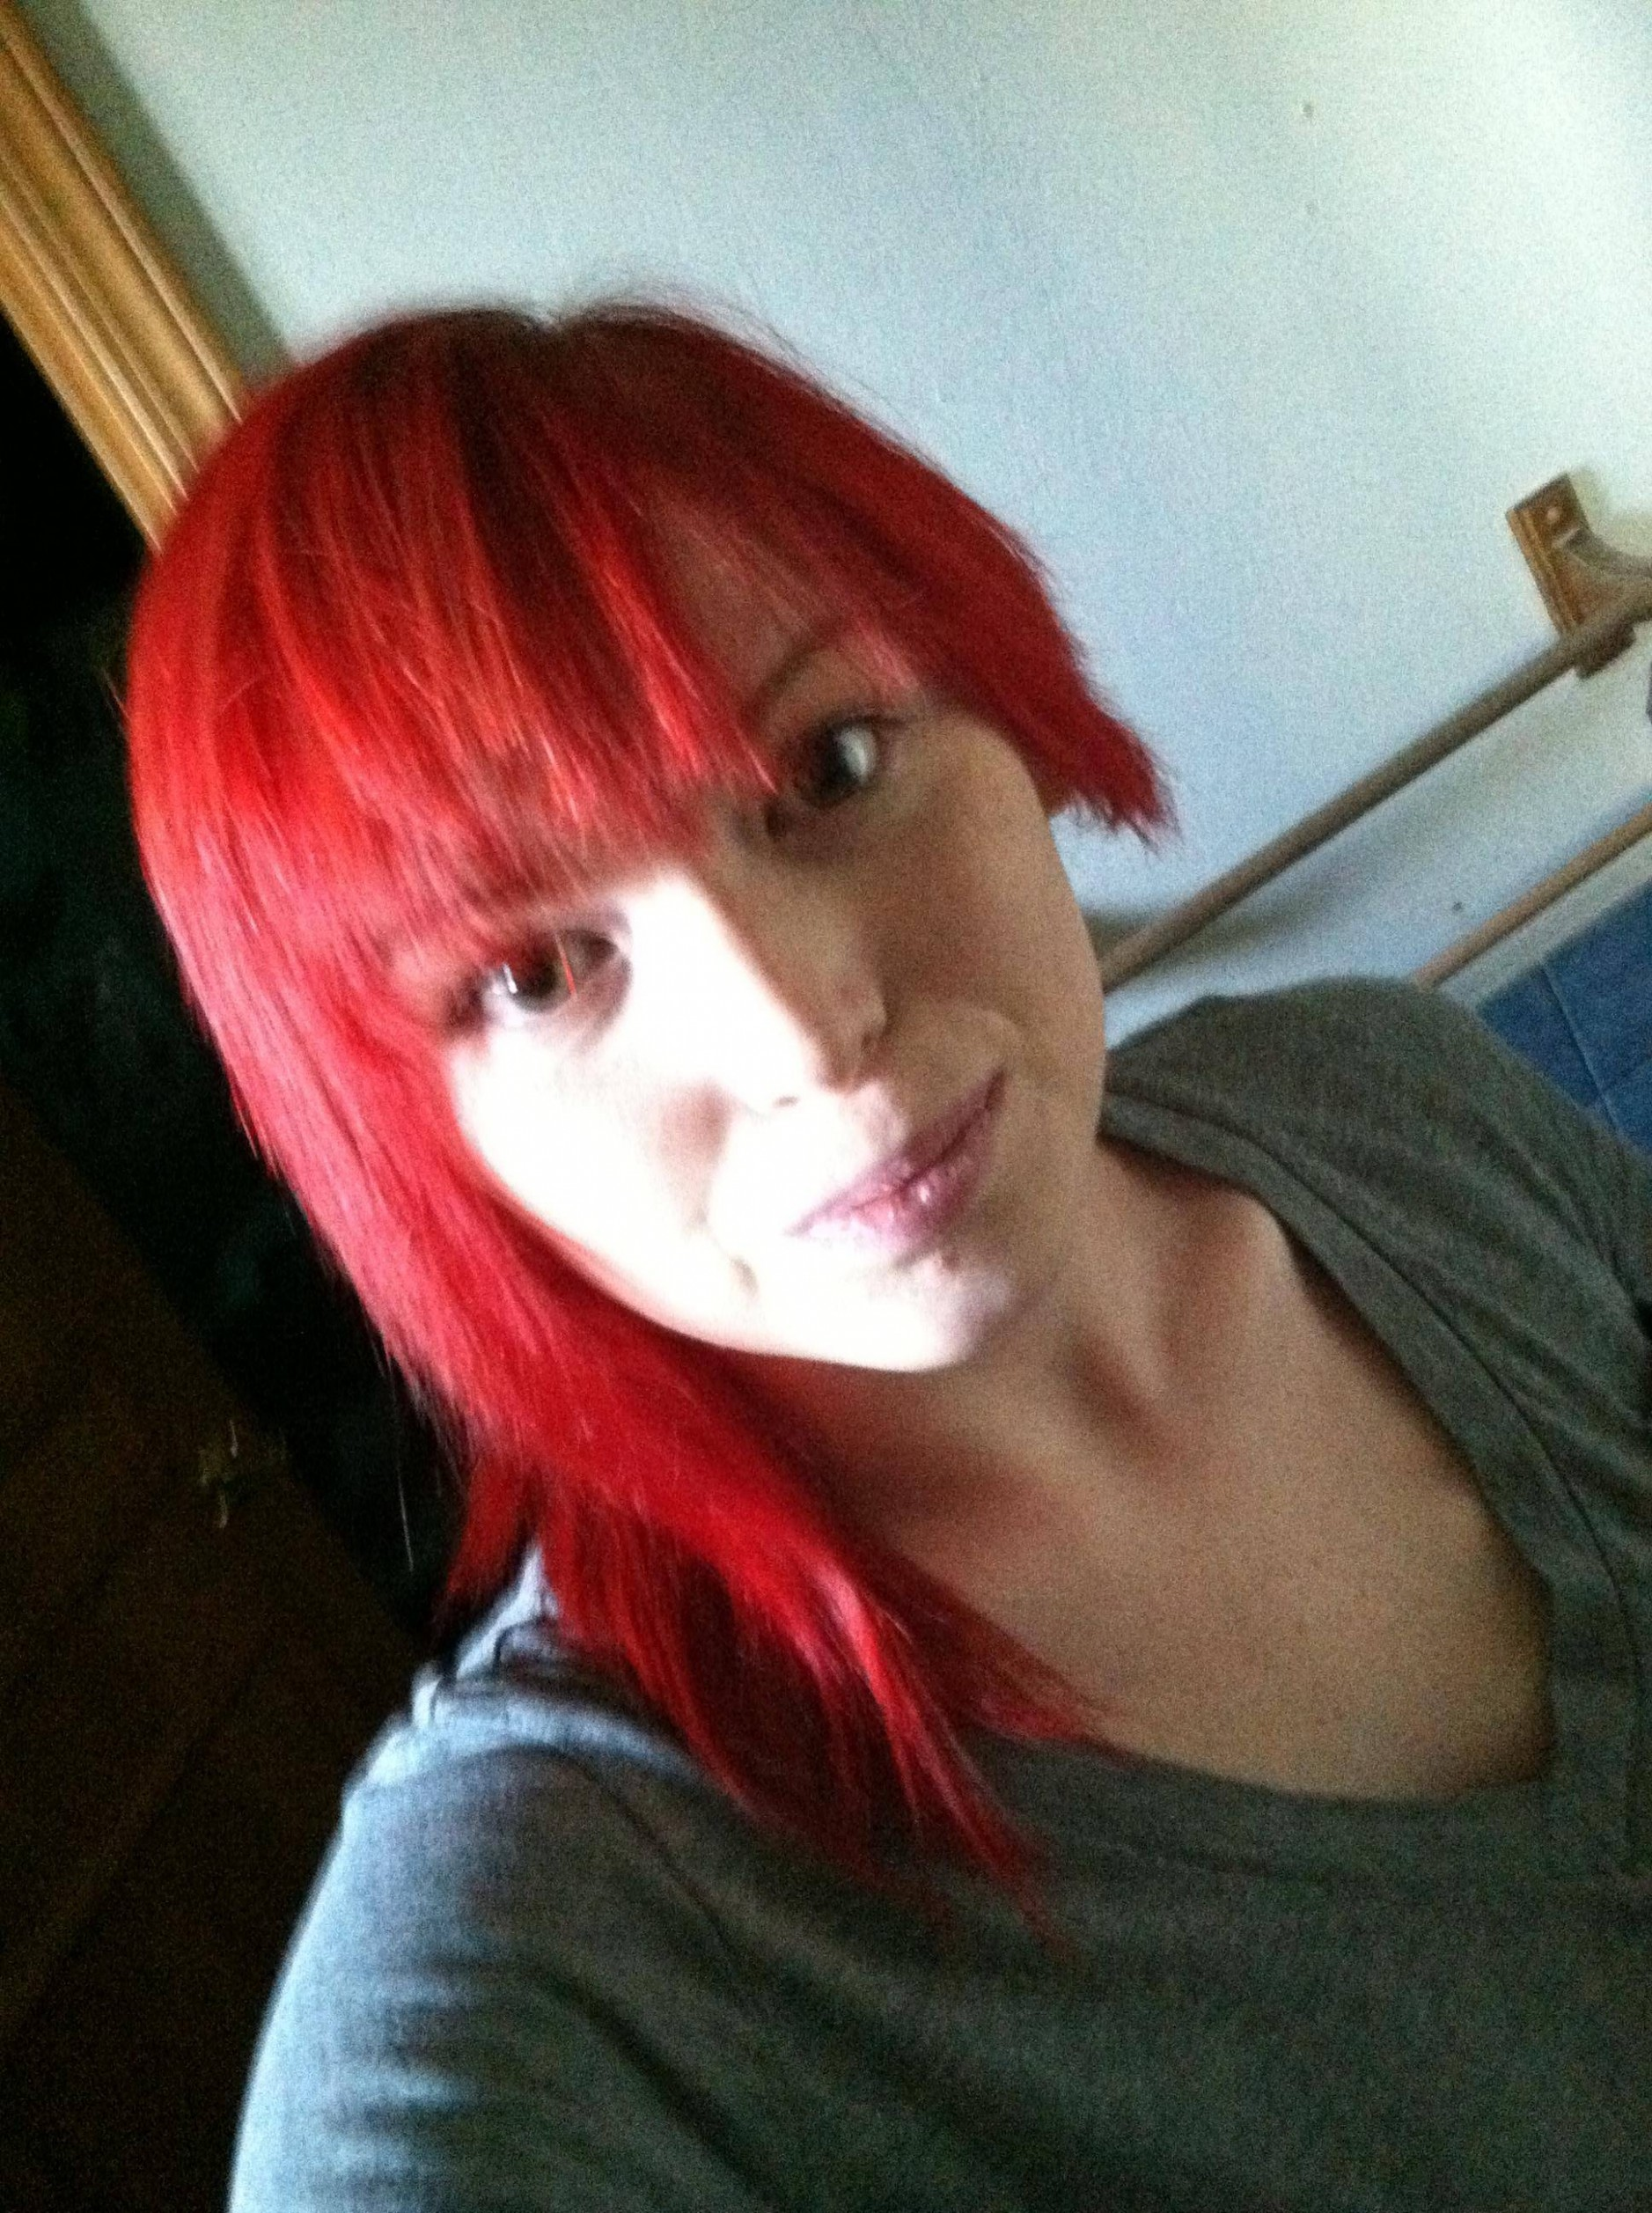 My Short On One Side Long On The Other, Bright Red Hair :11 Hair Short On One Side Long On The Other